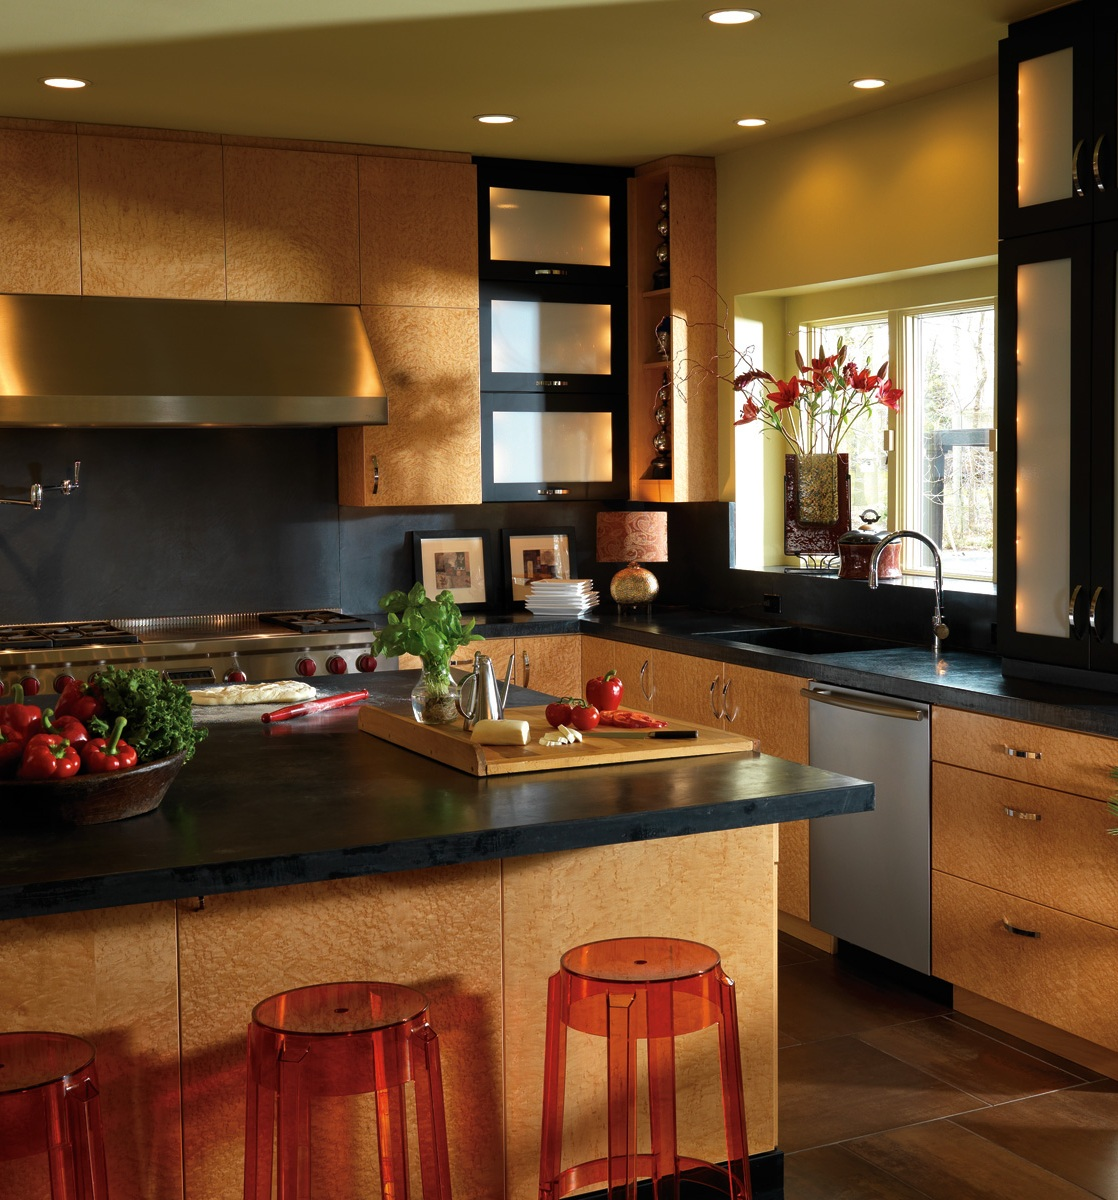 big-brown-asian-kitchen-island-with-black-countertops-set